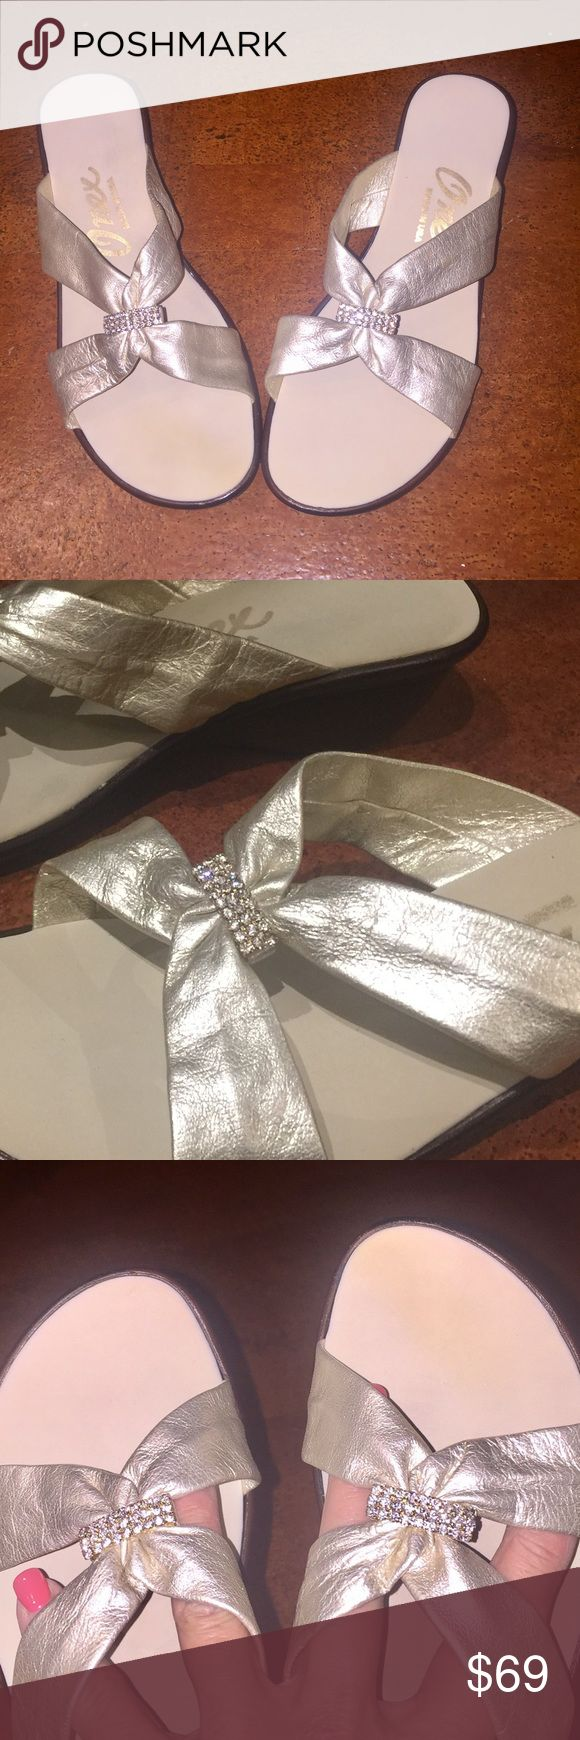 Dressy platinum leather, sparkly mules Brand new, in box, platinum leather, hand made in the USA, low heeled mules. Heel is just under 2 inches. These shoes are comfortable! Onex Shoes Mules & Clogs